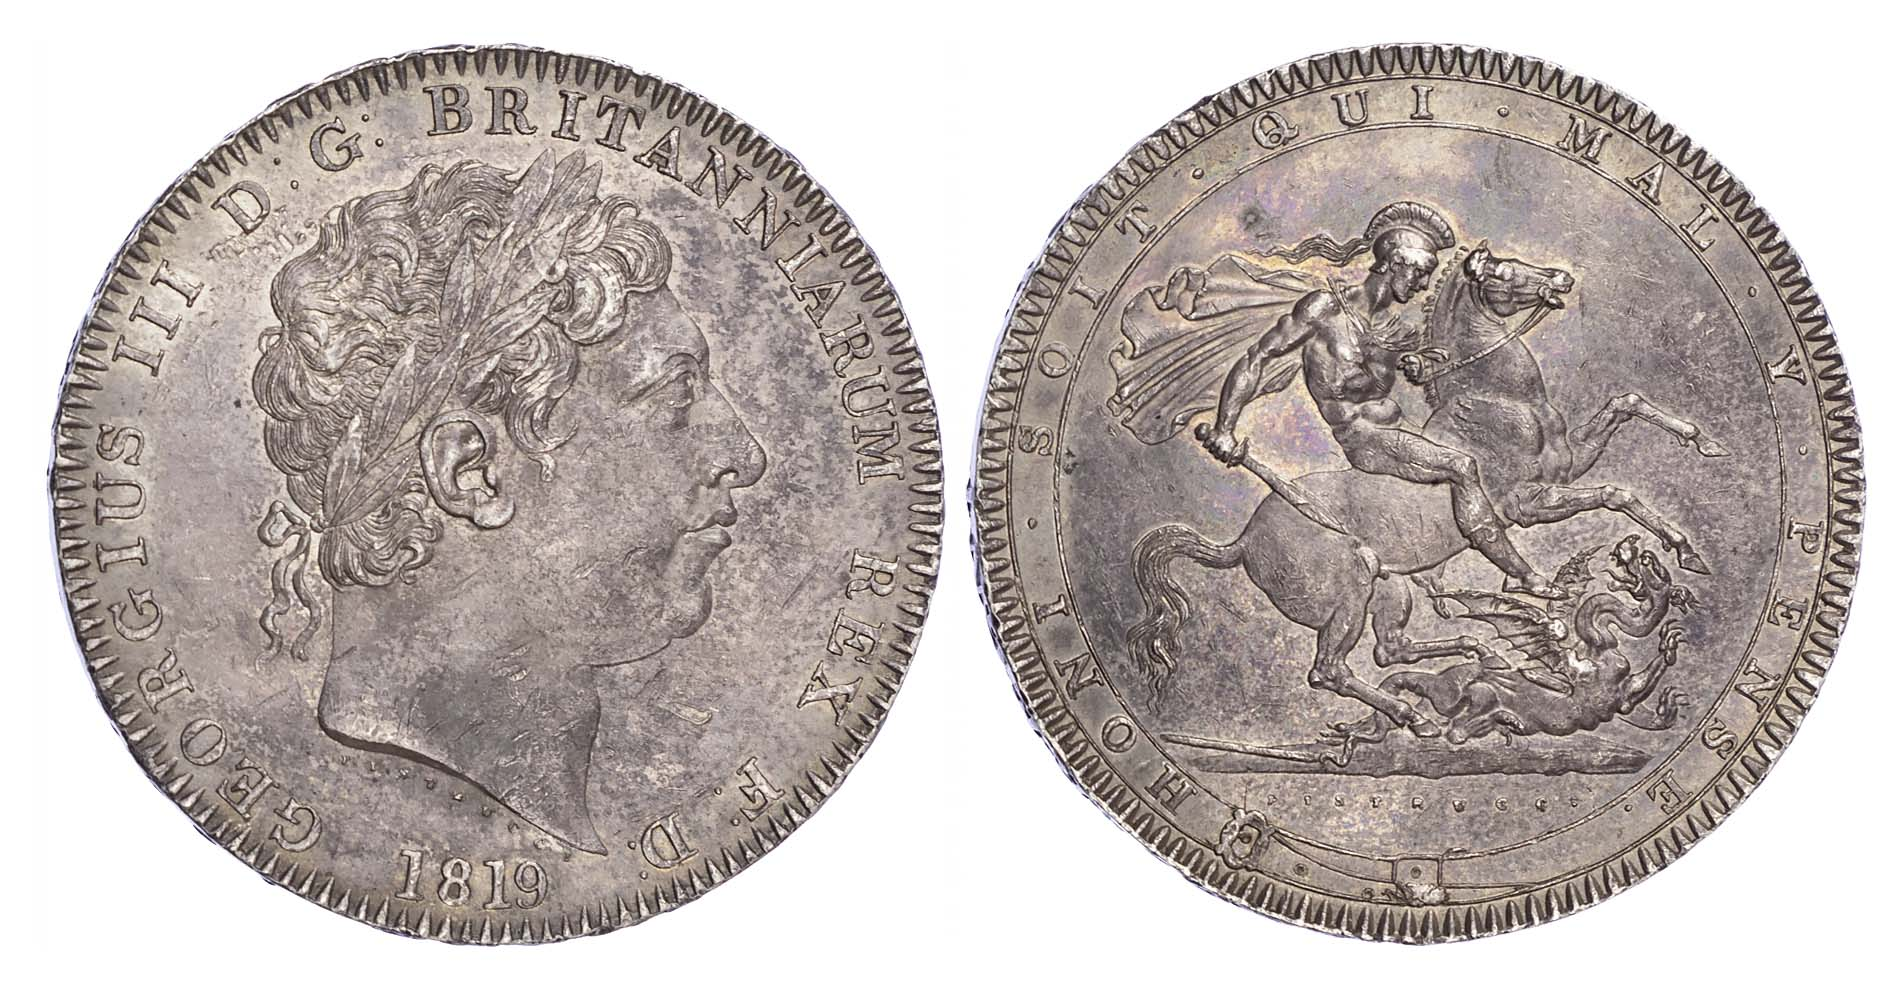 George III (1760-1820), Crown, 1819 LX (no stop after TUTAMEN)